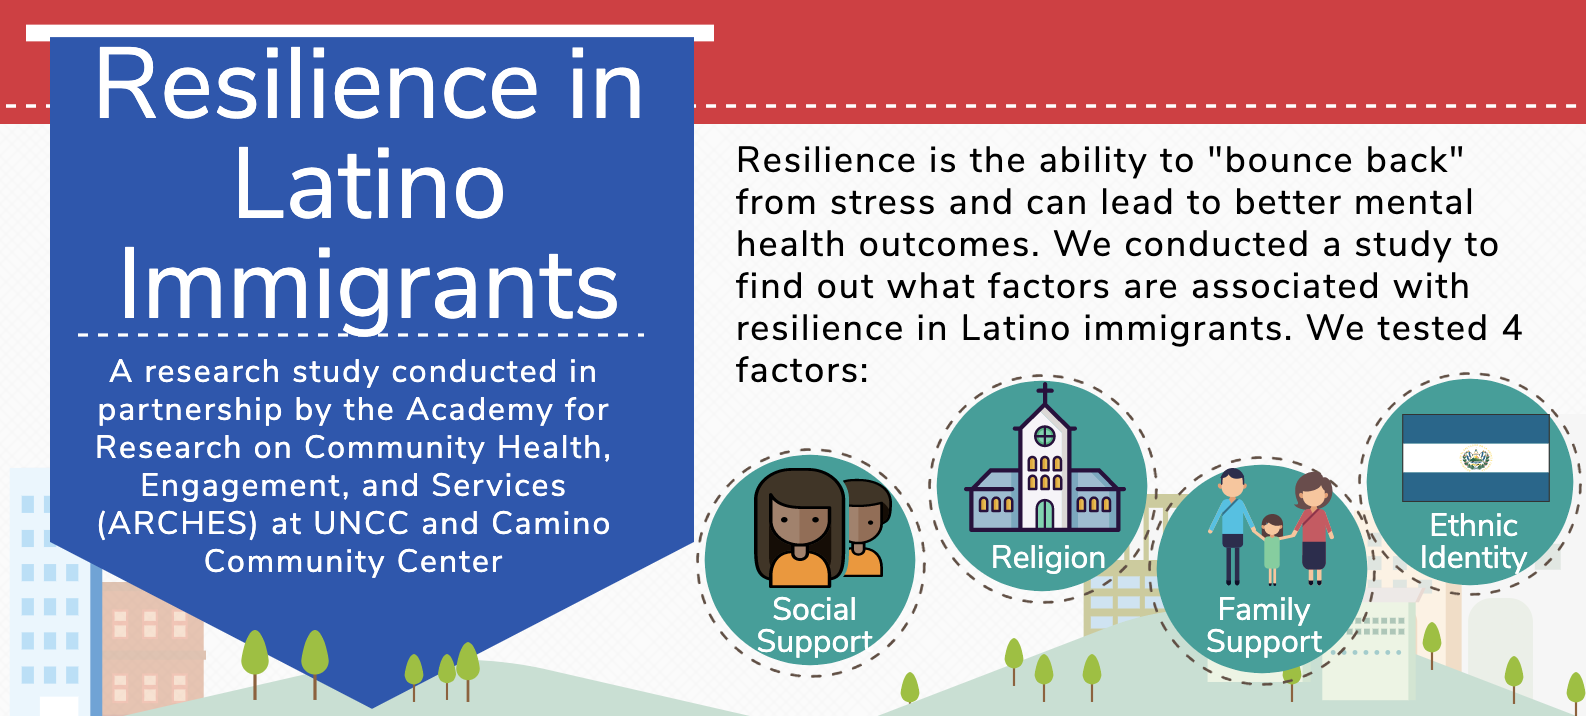 See the full infographic summary of the research in  English  and  Spanish .